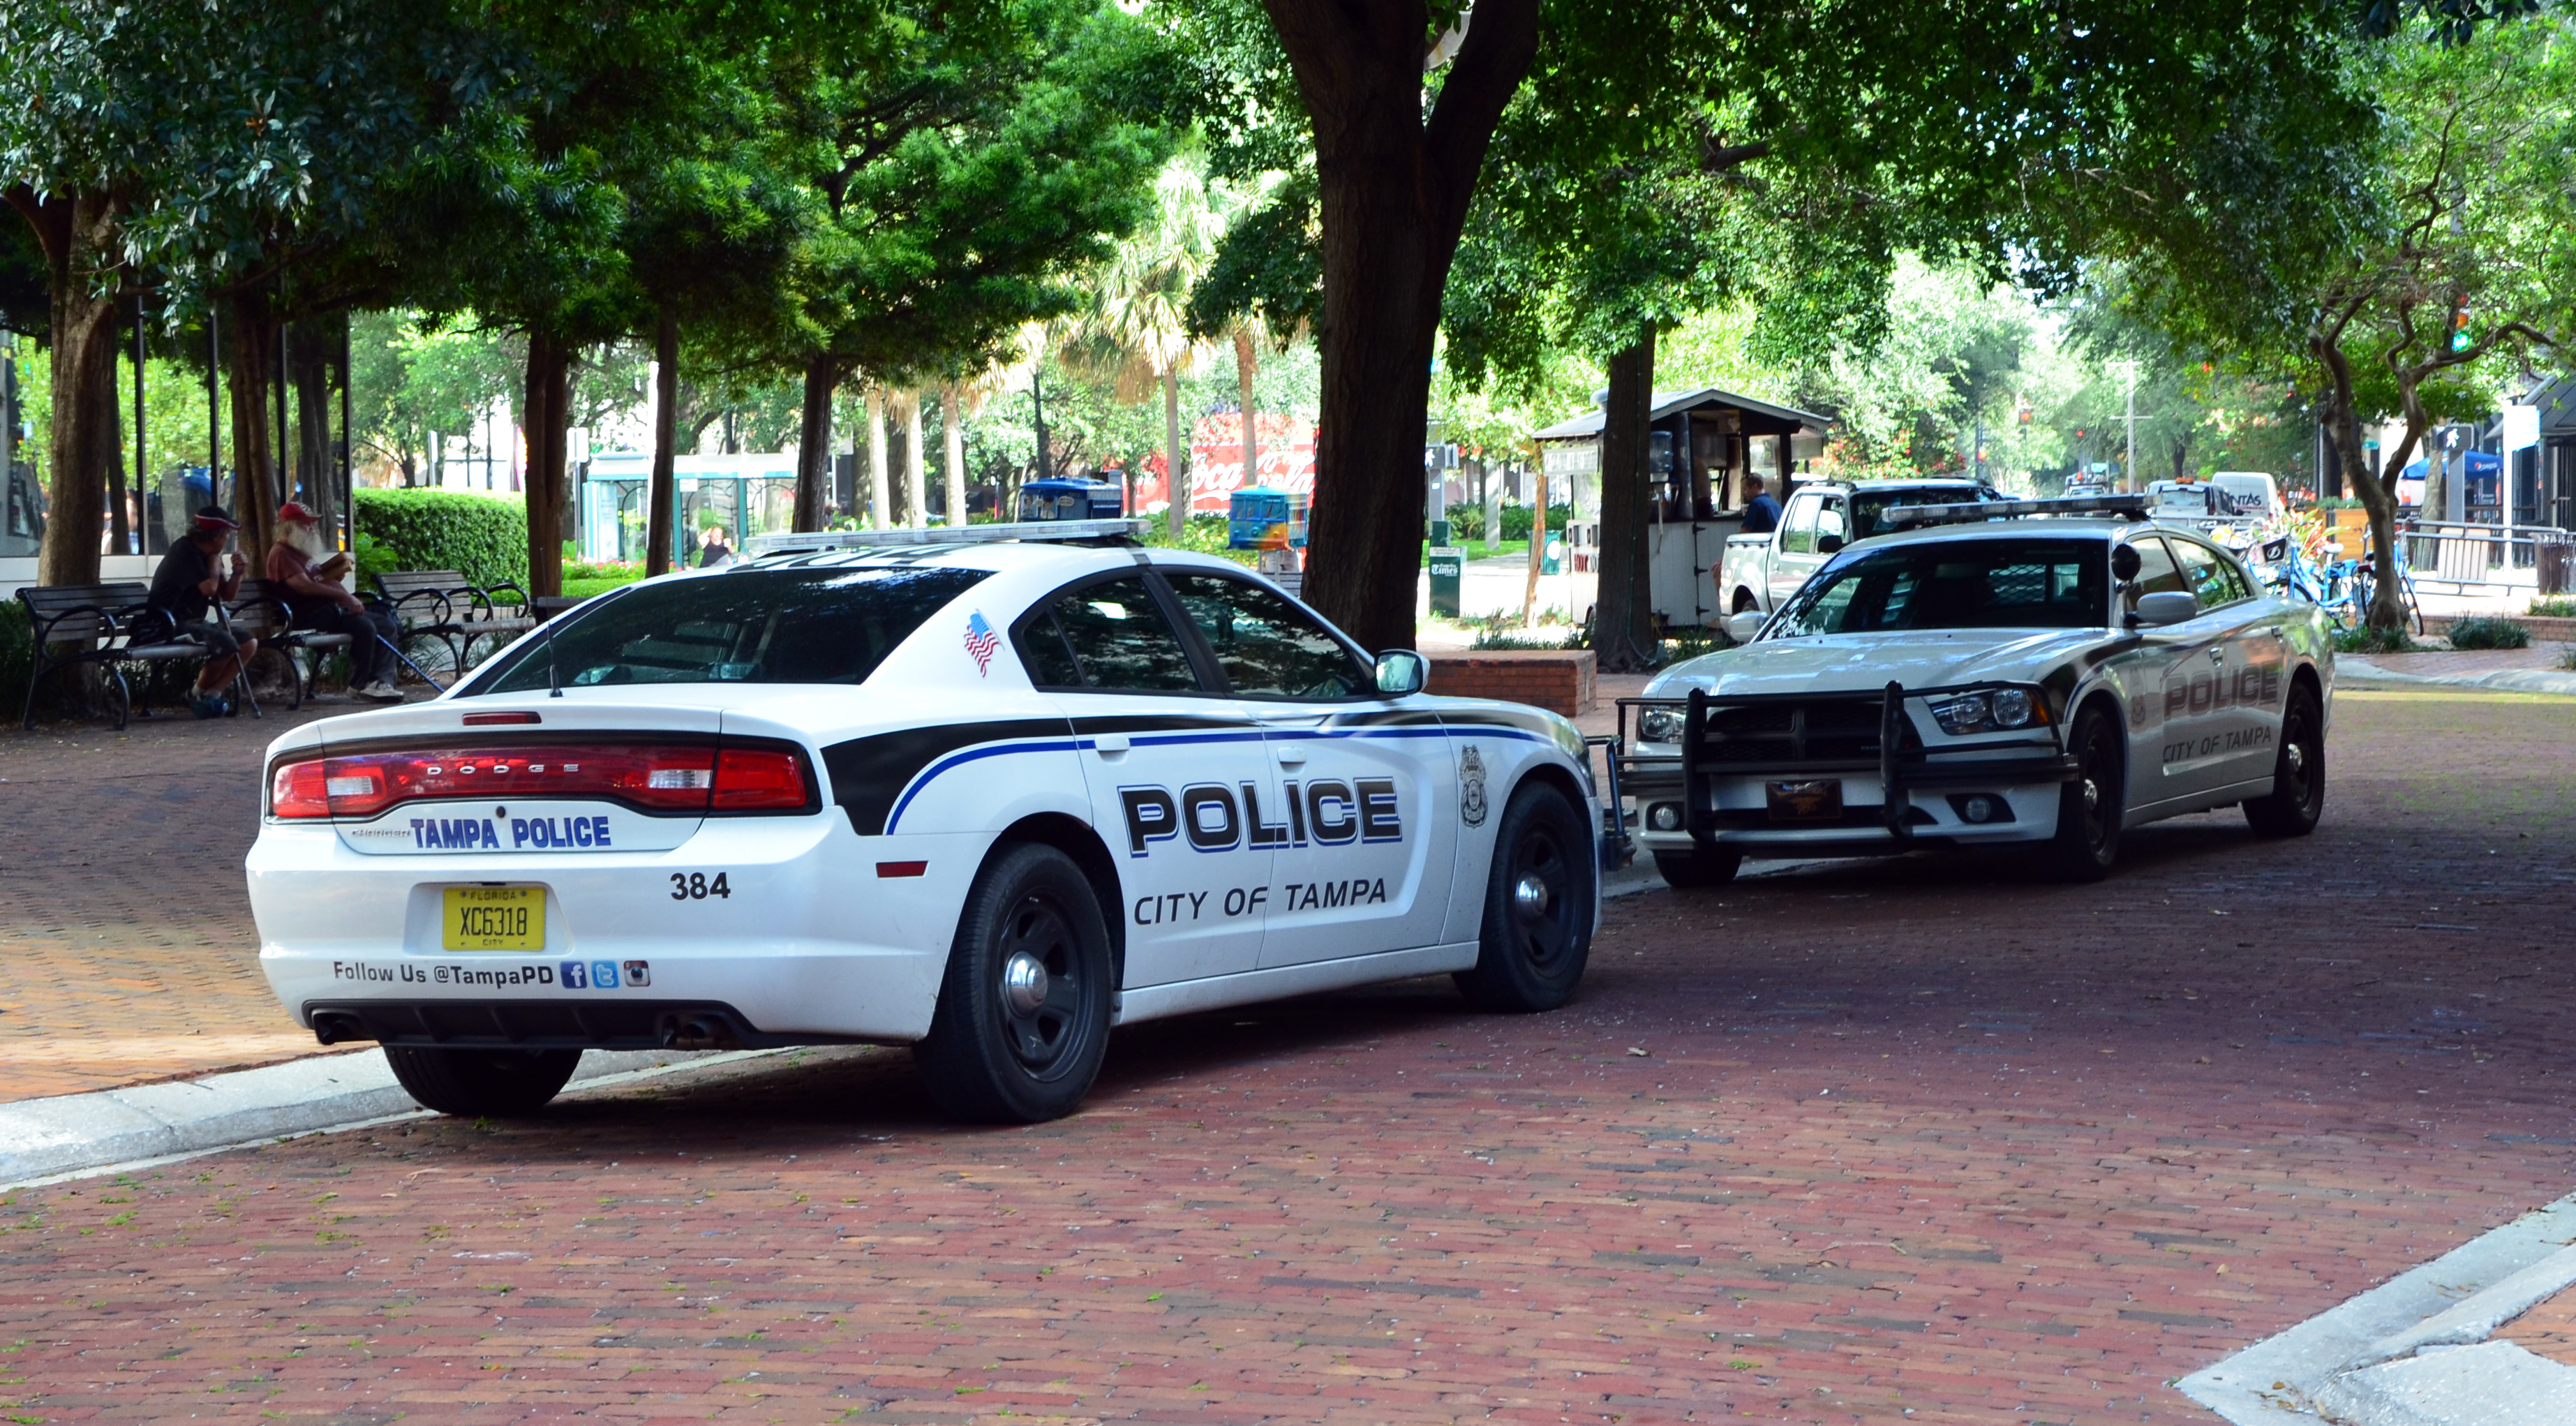 File:Dodge Charger Tampa Police 2.jpg - Wikimedia Commons